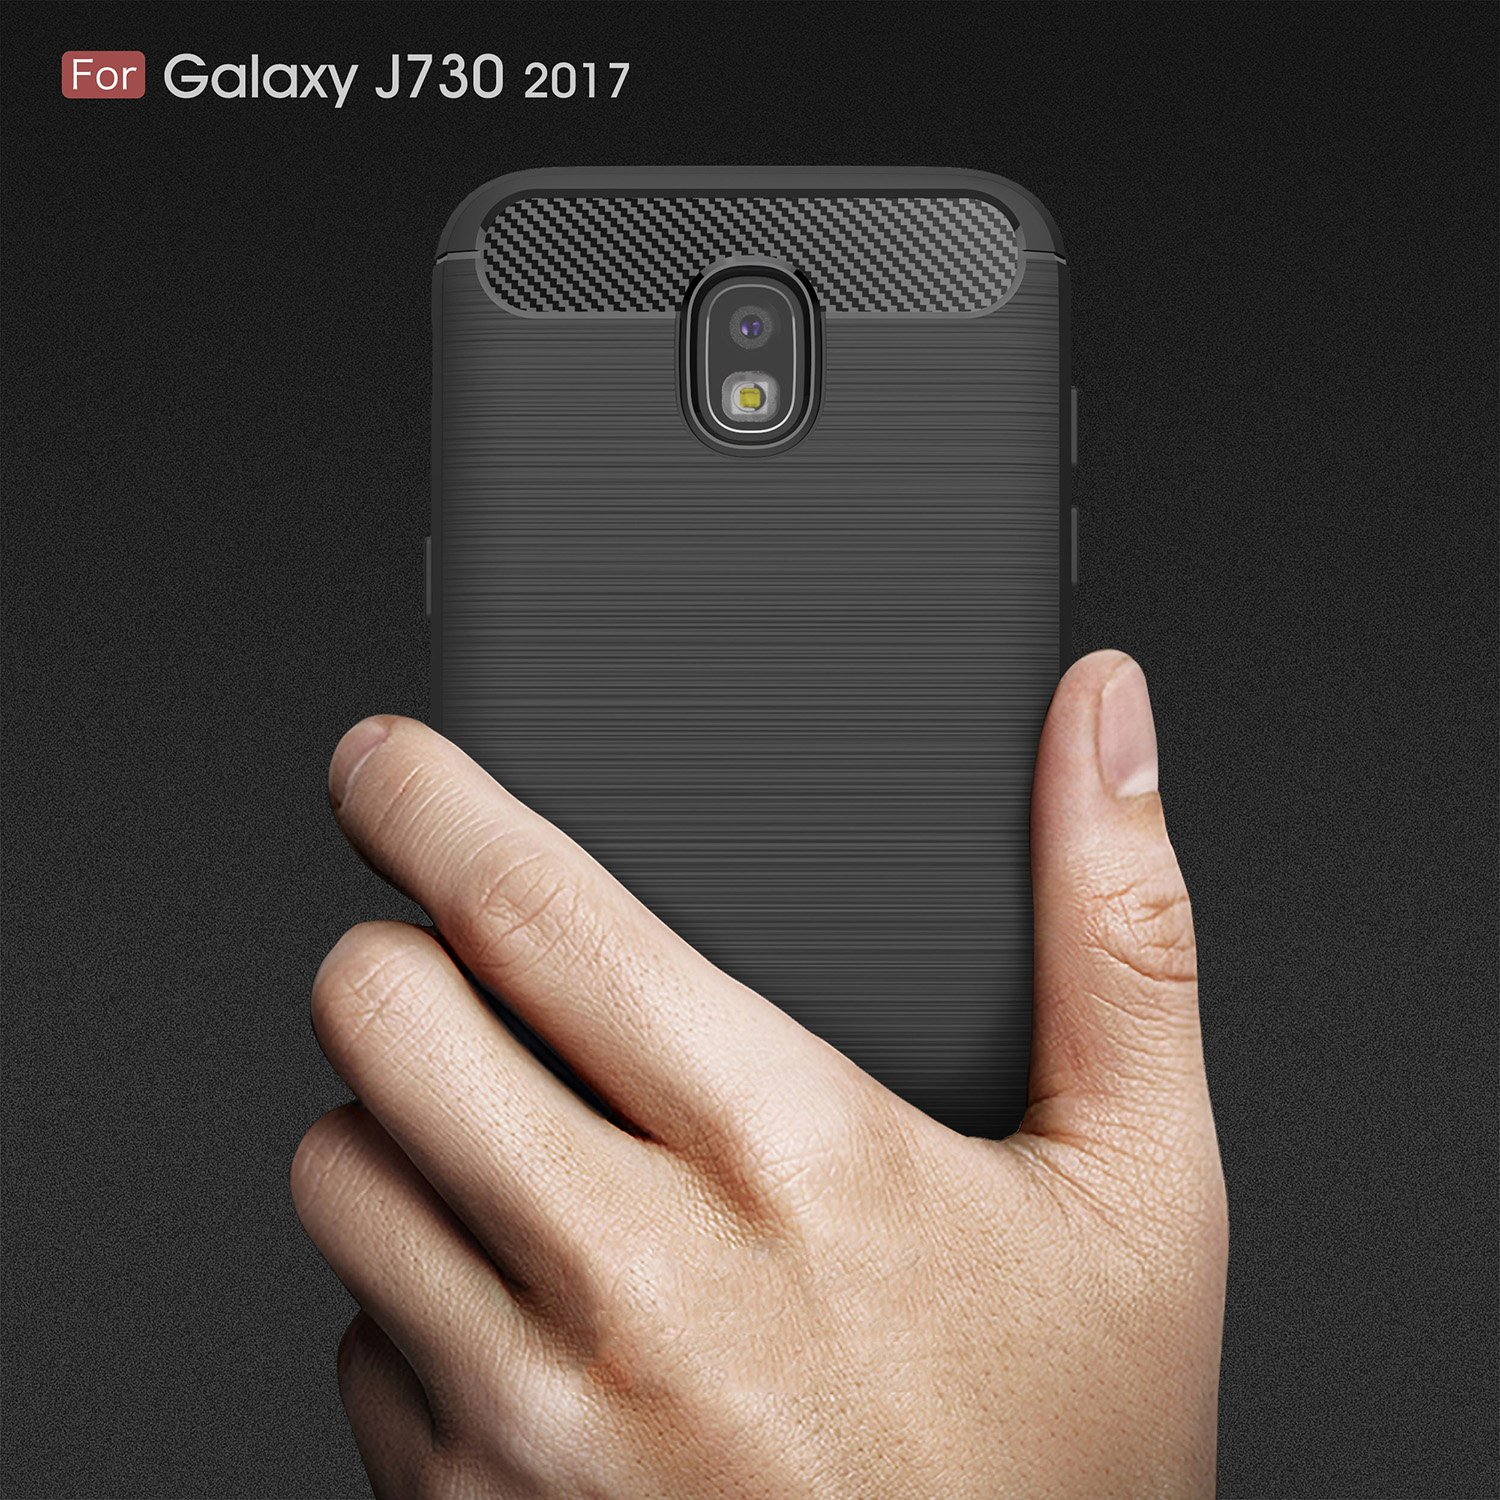 Amazon.com: For Galaxy J730 J7Pro (2017) Case, Ultra-thin Brushed Carbon Fiber Slim Armor Soft TPU Phone Back Full Cover Case For Samsung Galaxy J730 (2017) ...